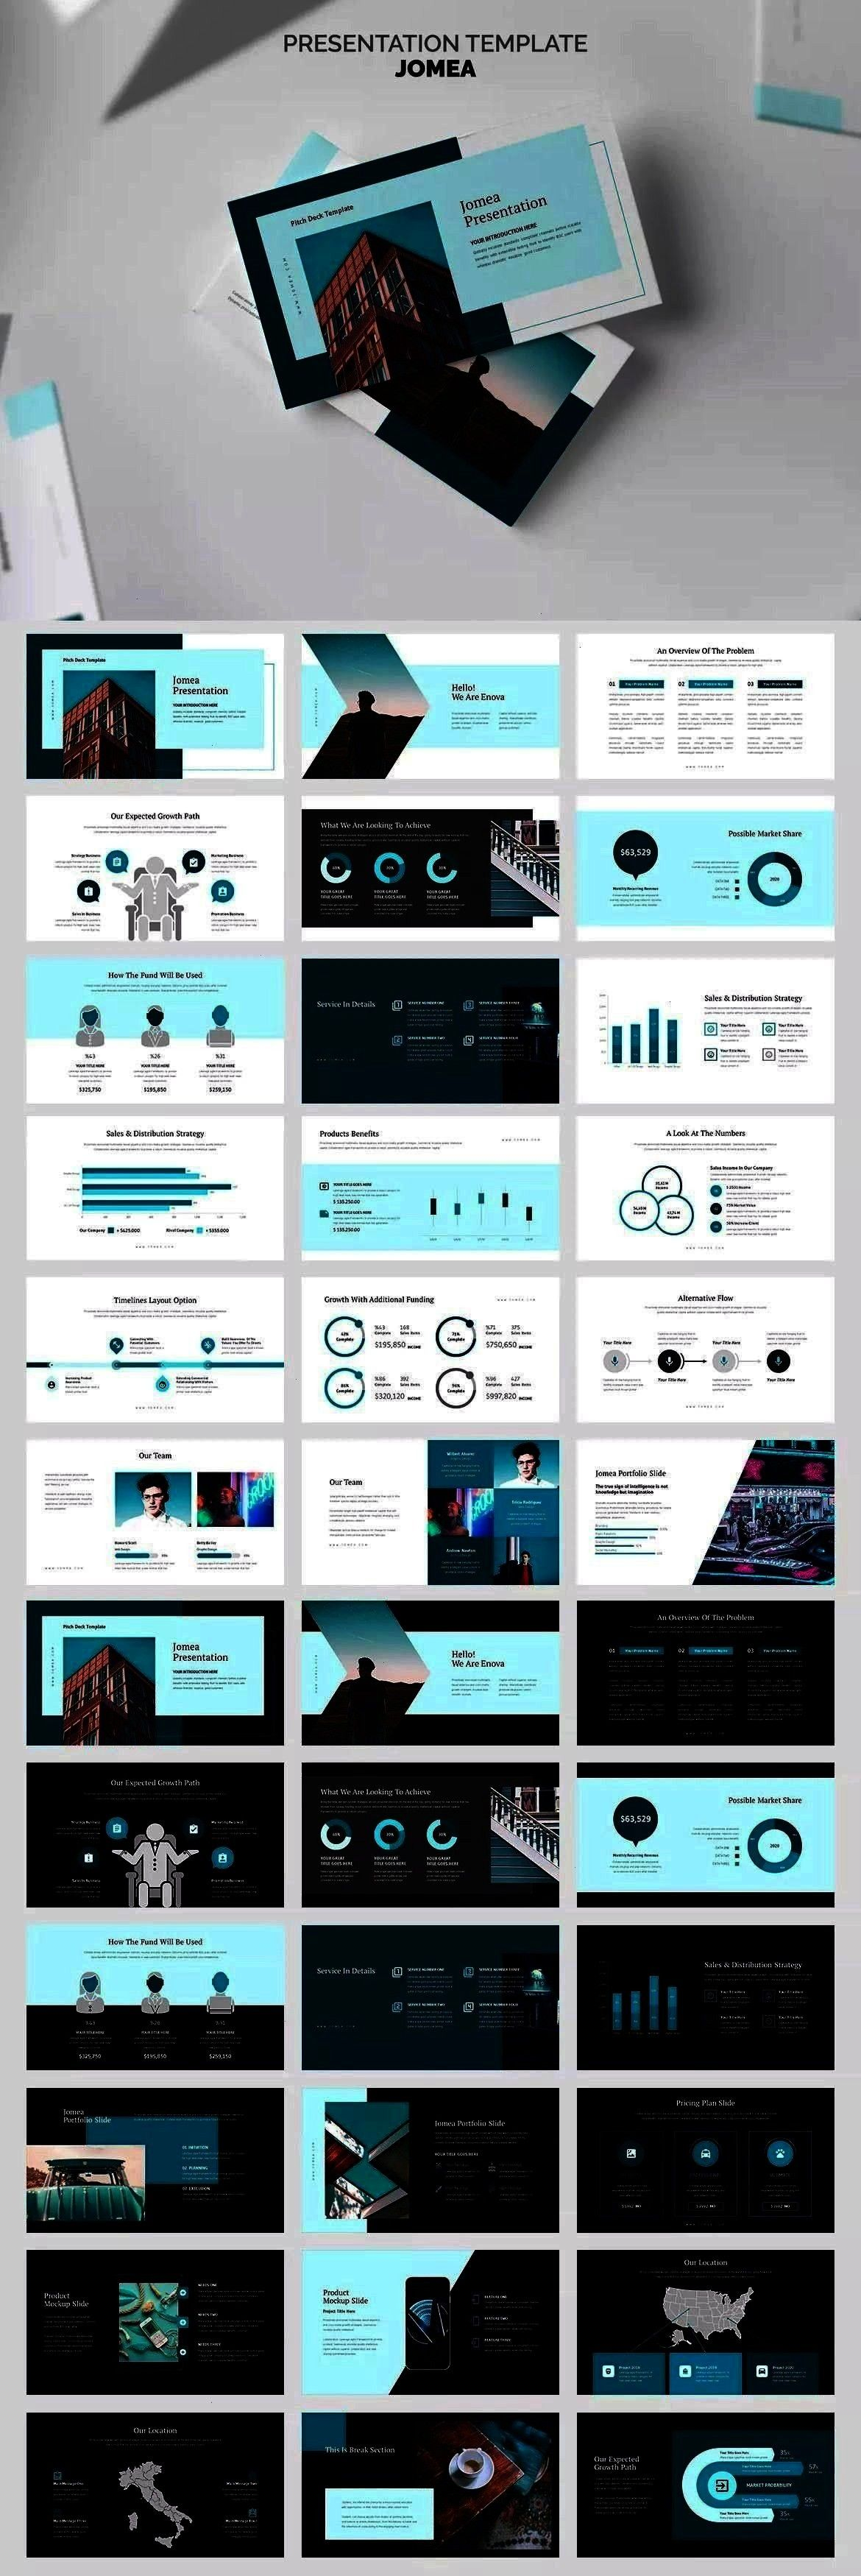 Pitch Deck Powerpoint Presentation Template  Jomea  Cyan Color Tone Pitch Deck Powerpoint Presentation Template  100 presentation slides in Jomea  Cyan Color Tone Pitch D...